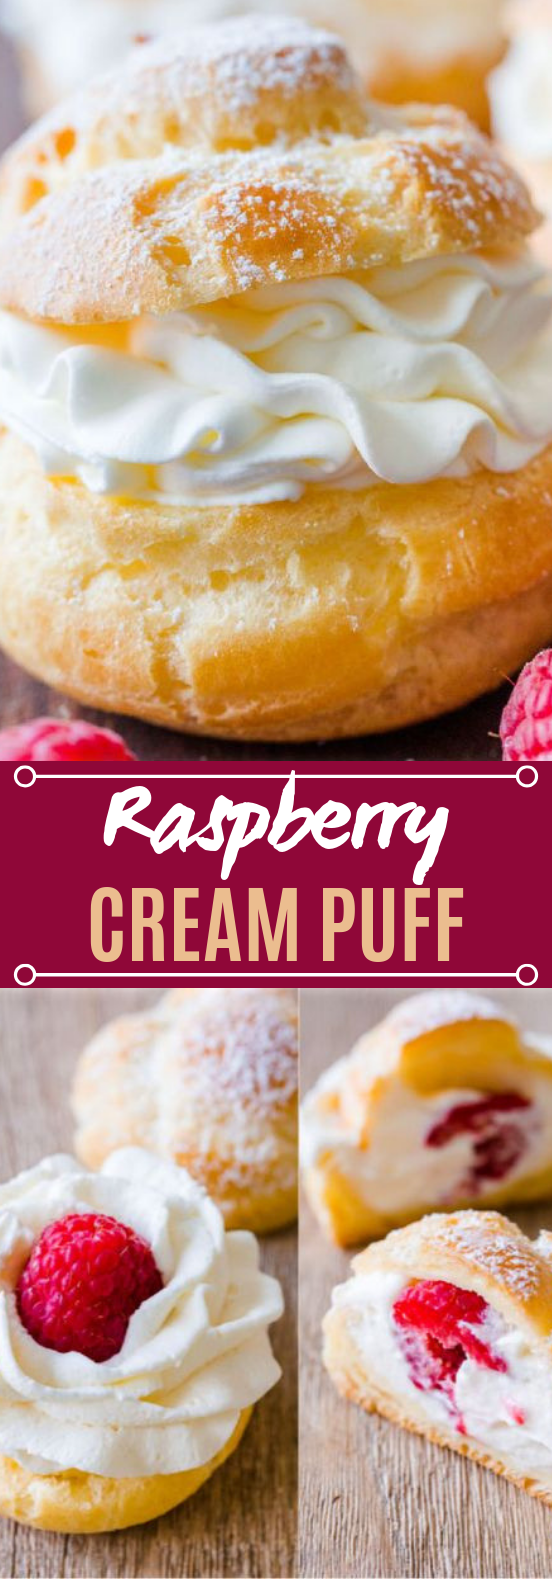 Raspberry Cream Puffs #cake #desserts